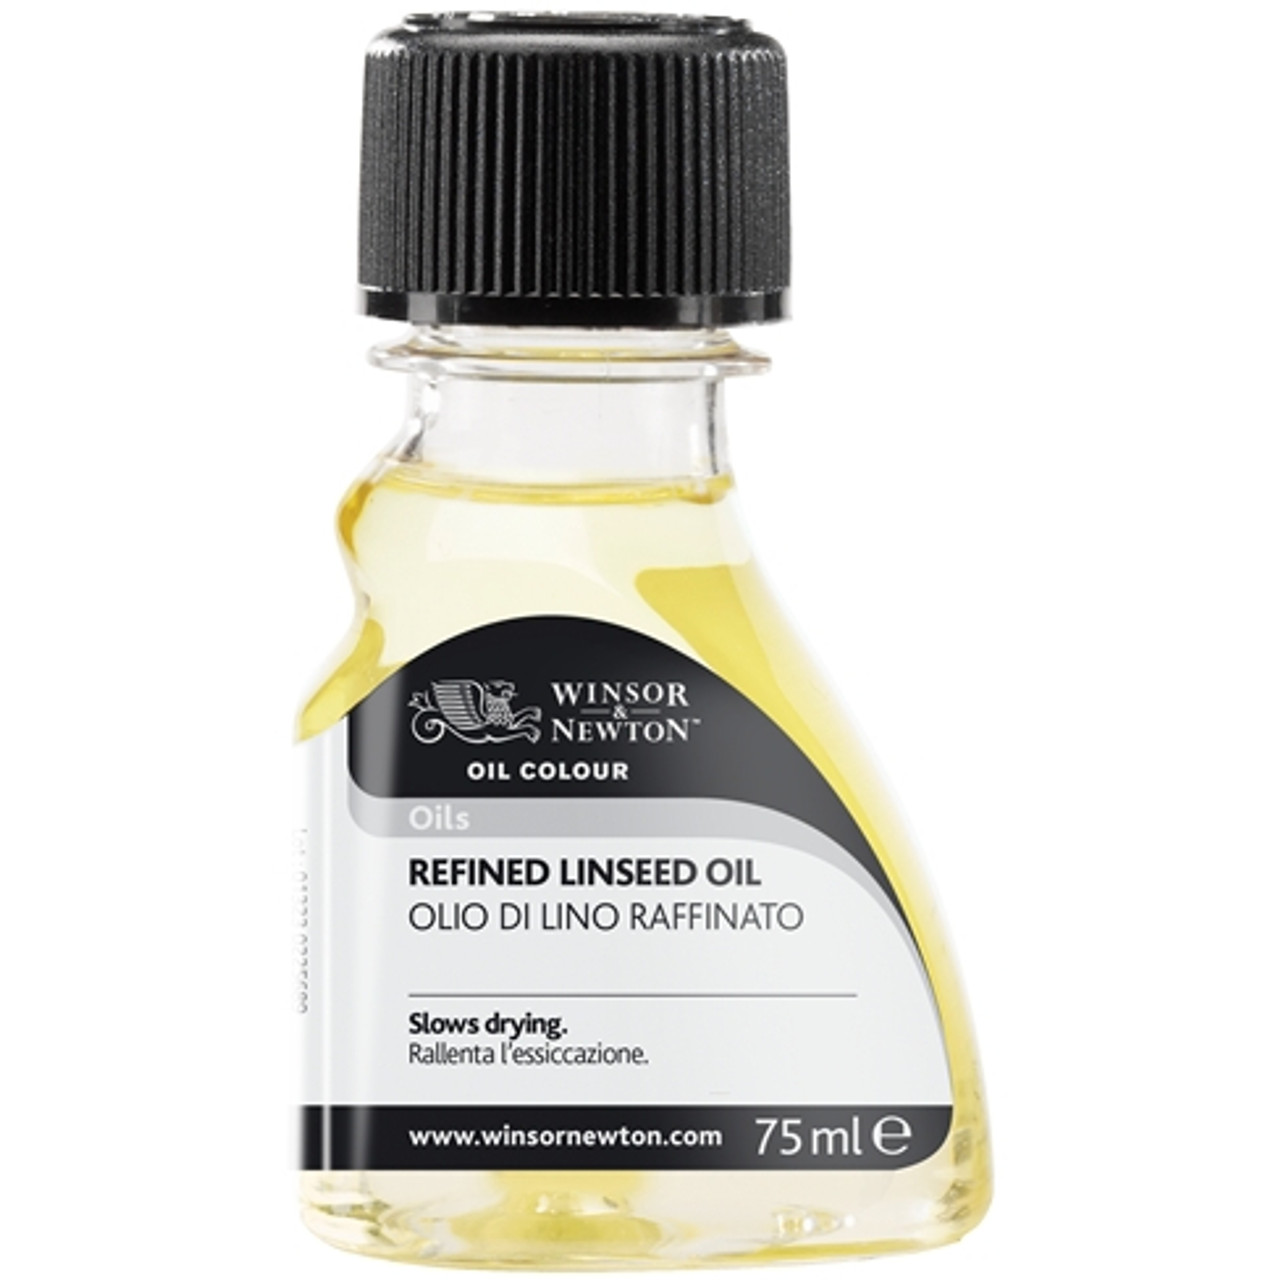 Refined Linseed Oil, 75ml